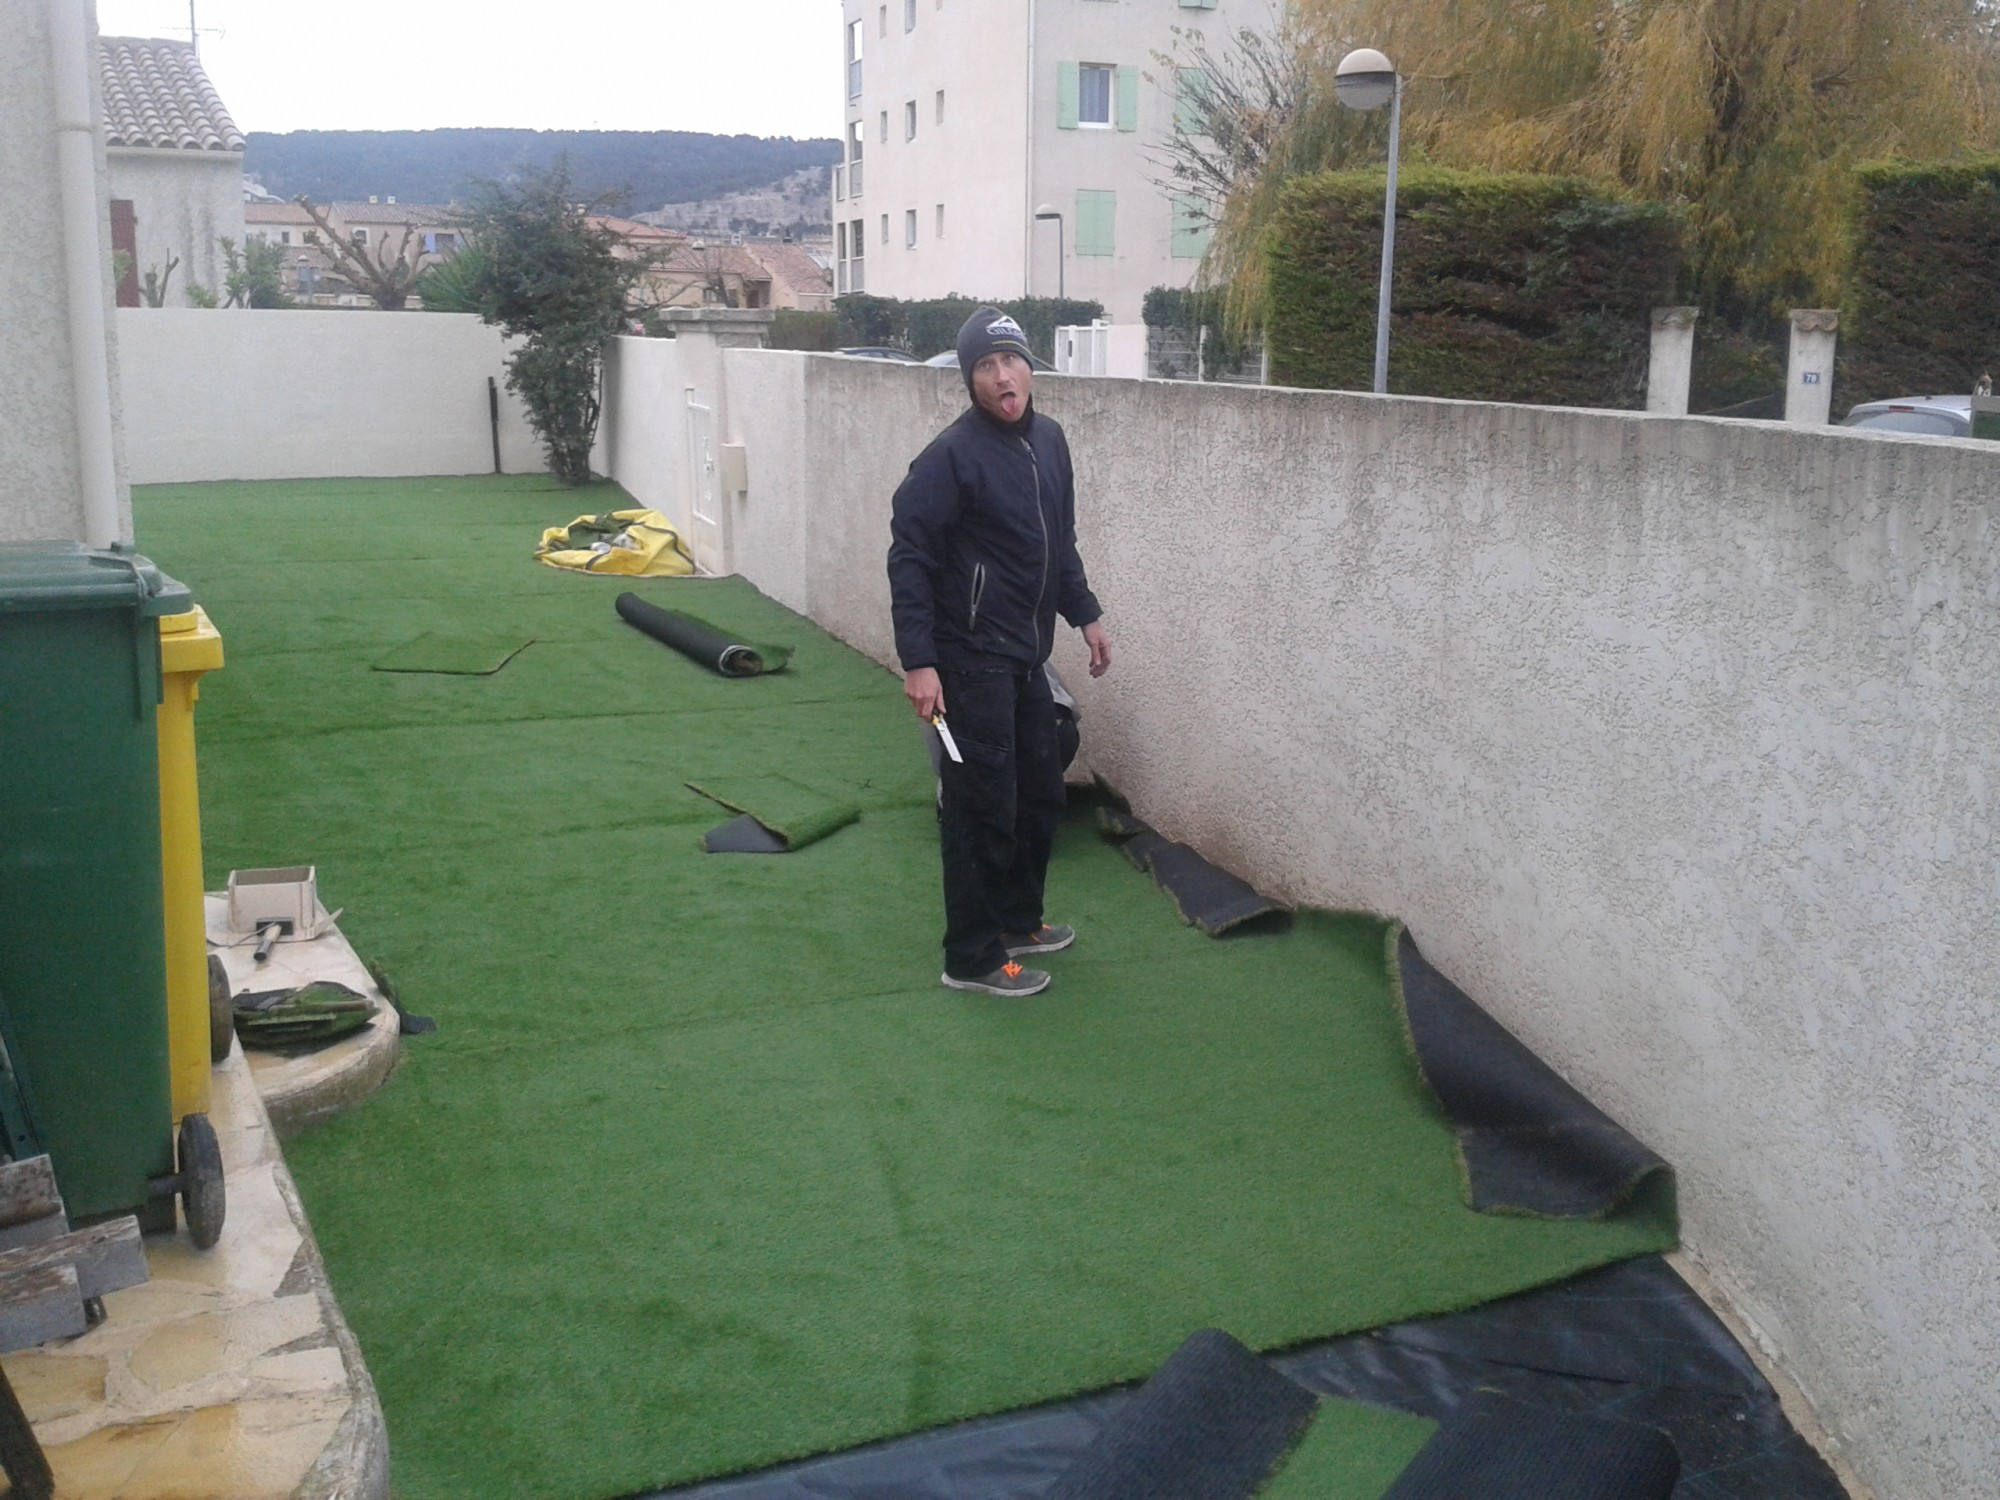 Installation d 39 un gazon synth tique martigues dans un jardin la pose ga - Pose de gazon synthetique sur terre ...